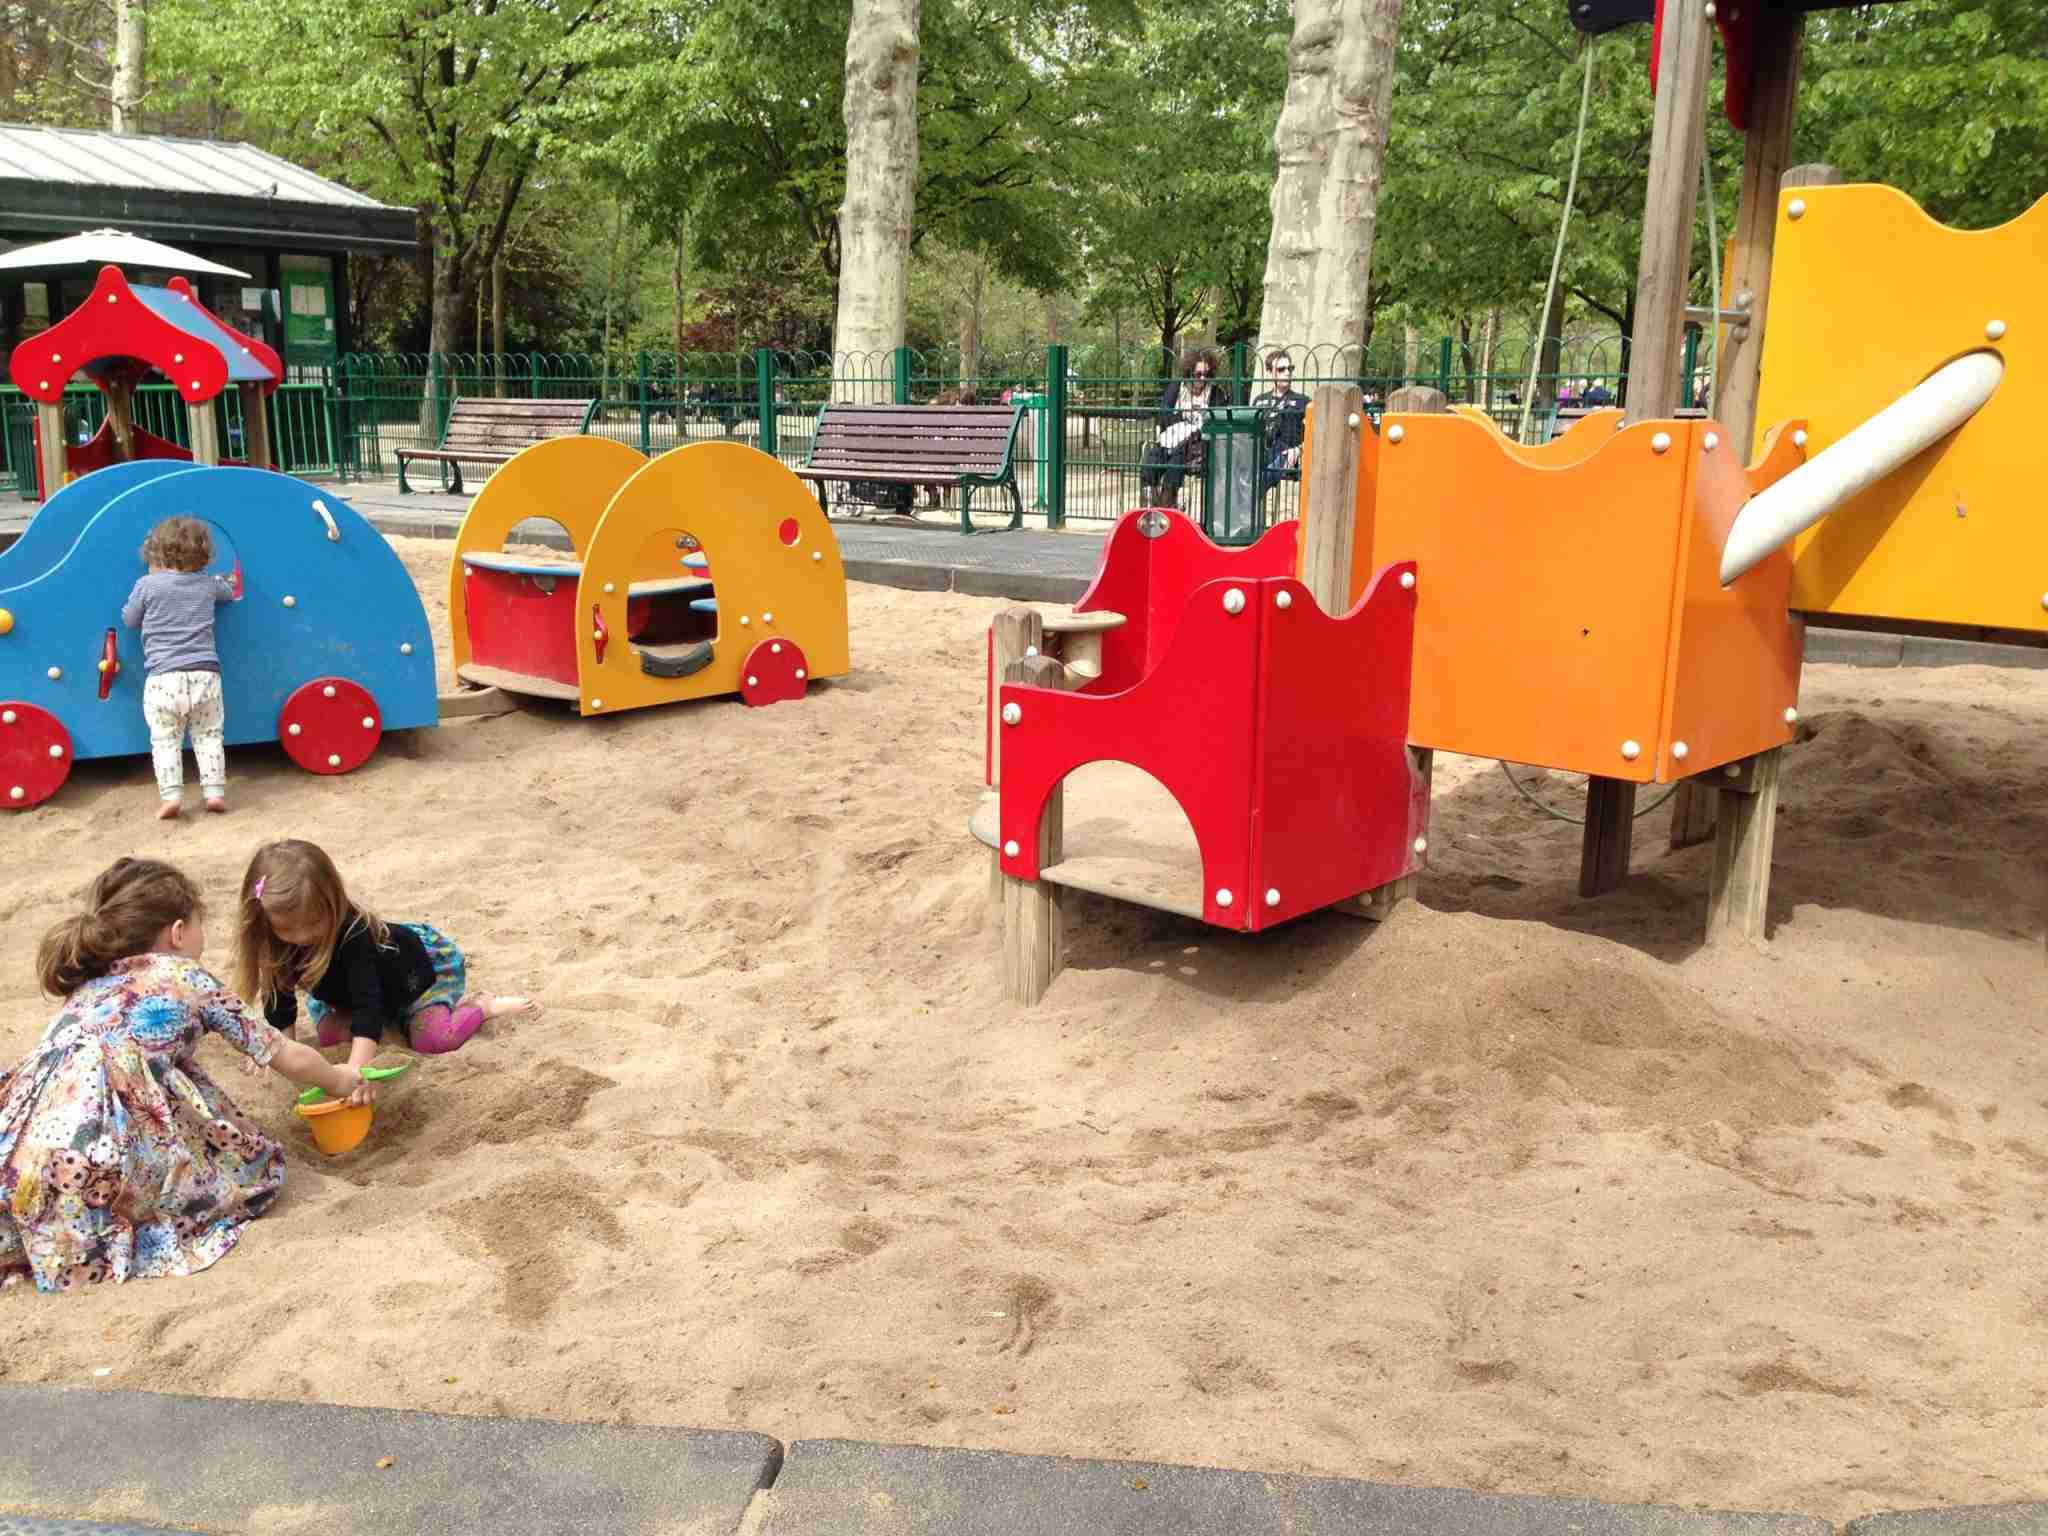 My first daughter playing with kids in a park in Paris (Summer Hull/The Points Guy)